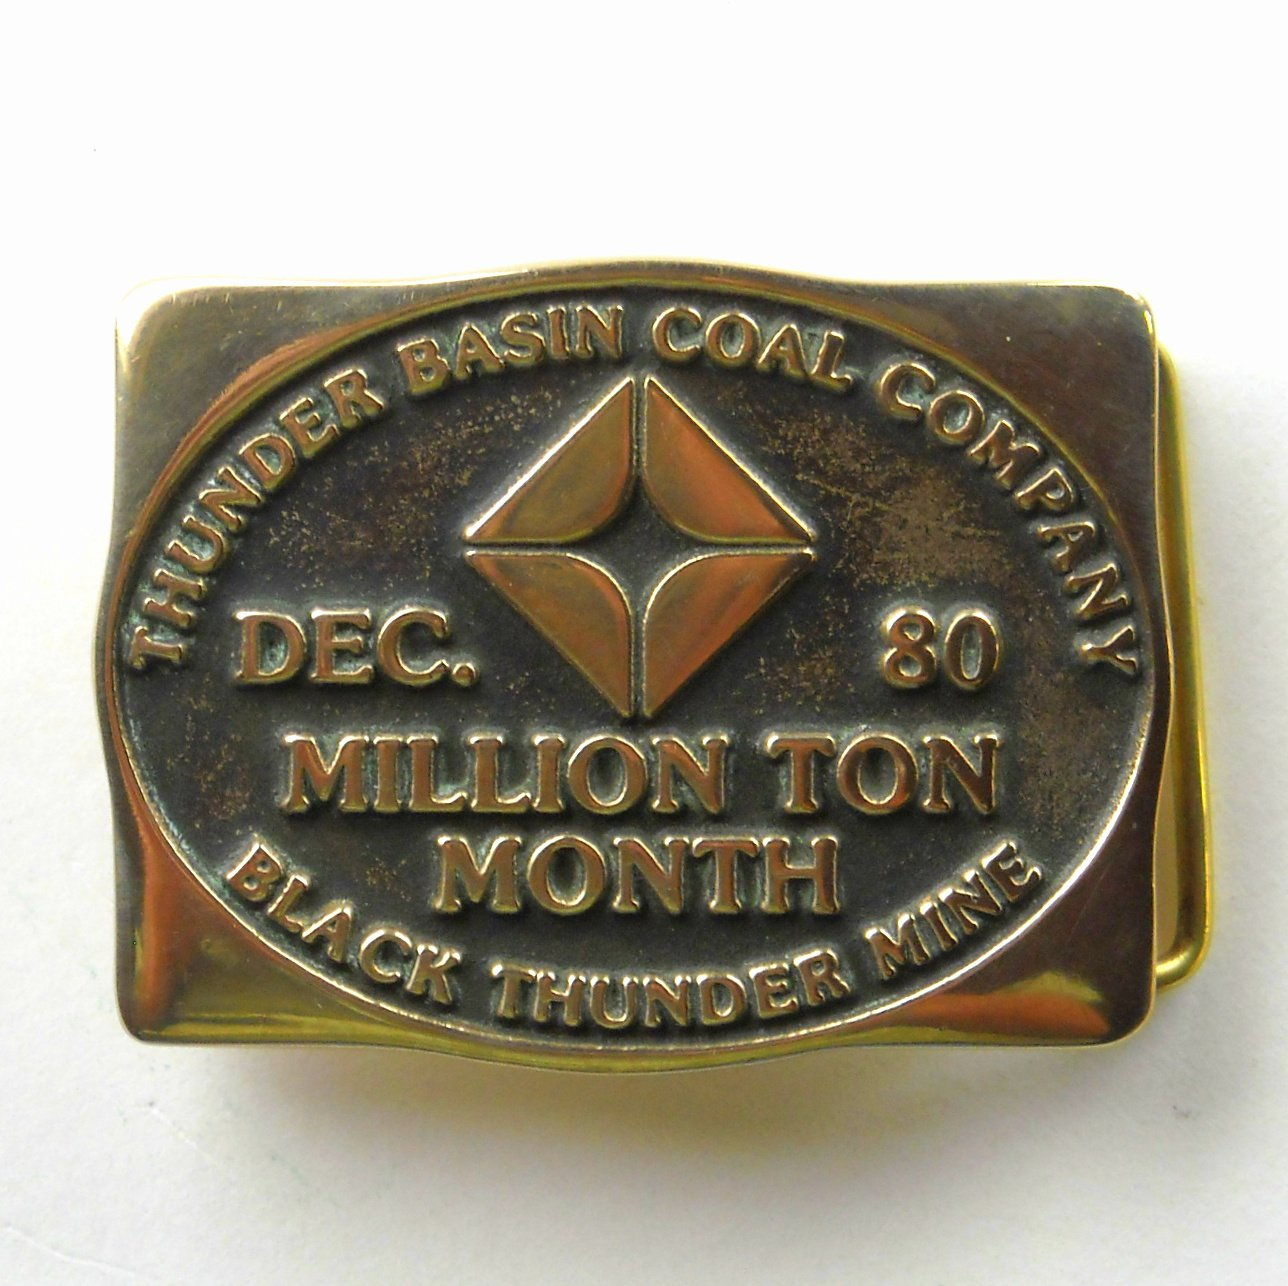 Black Thunder Basin Coal Mine Anacortes Solid Brass Vintage belt buckle